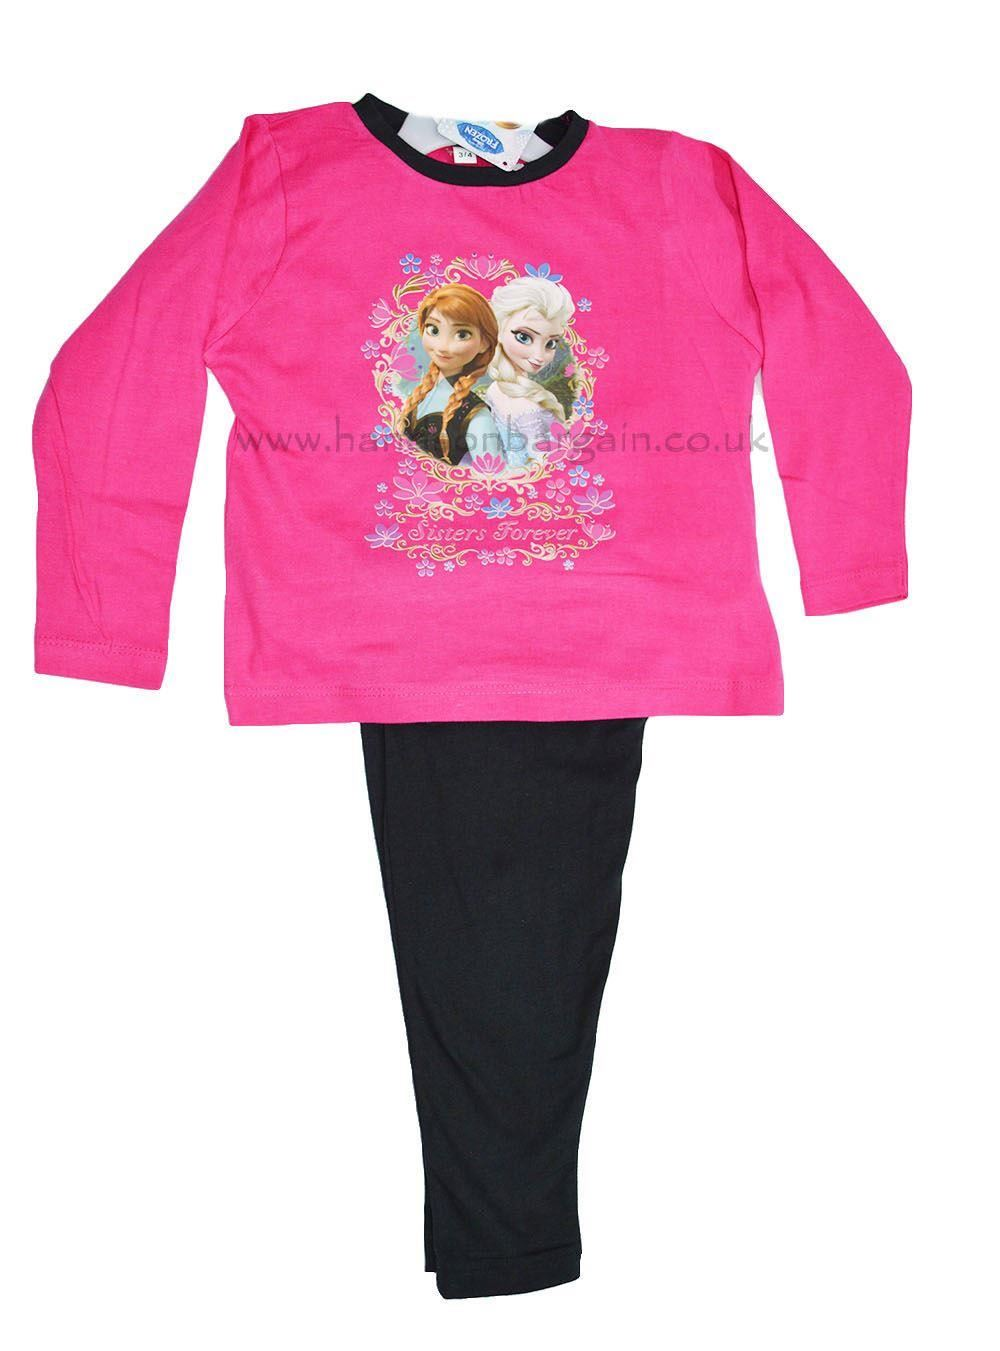 Kids Girls Disney Frozen Elsa Anna Nightwear Top